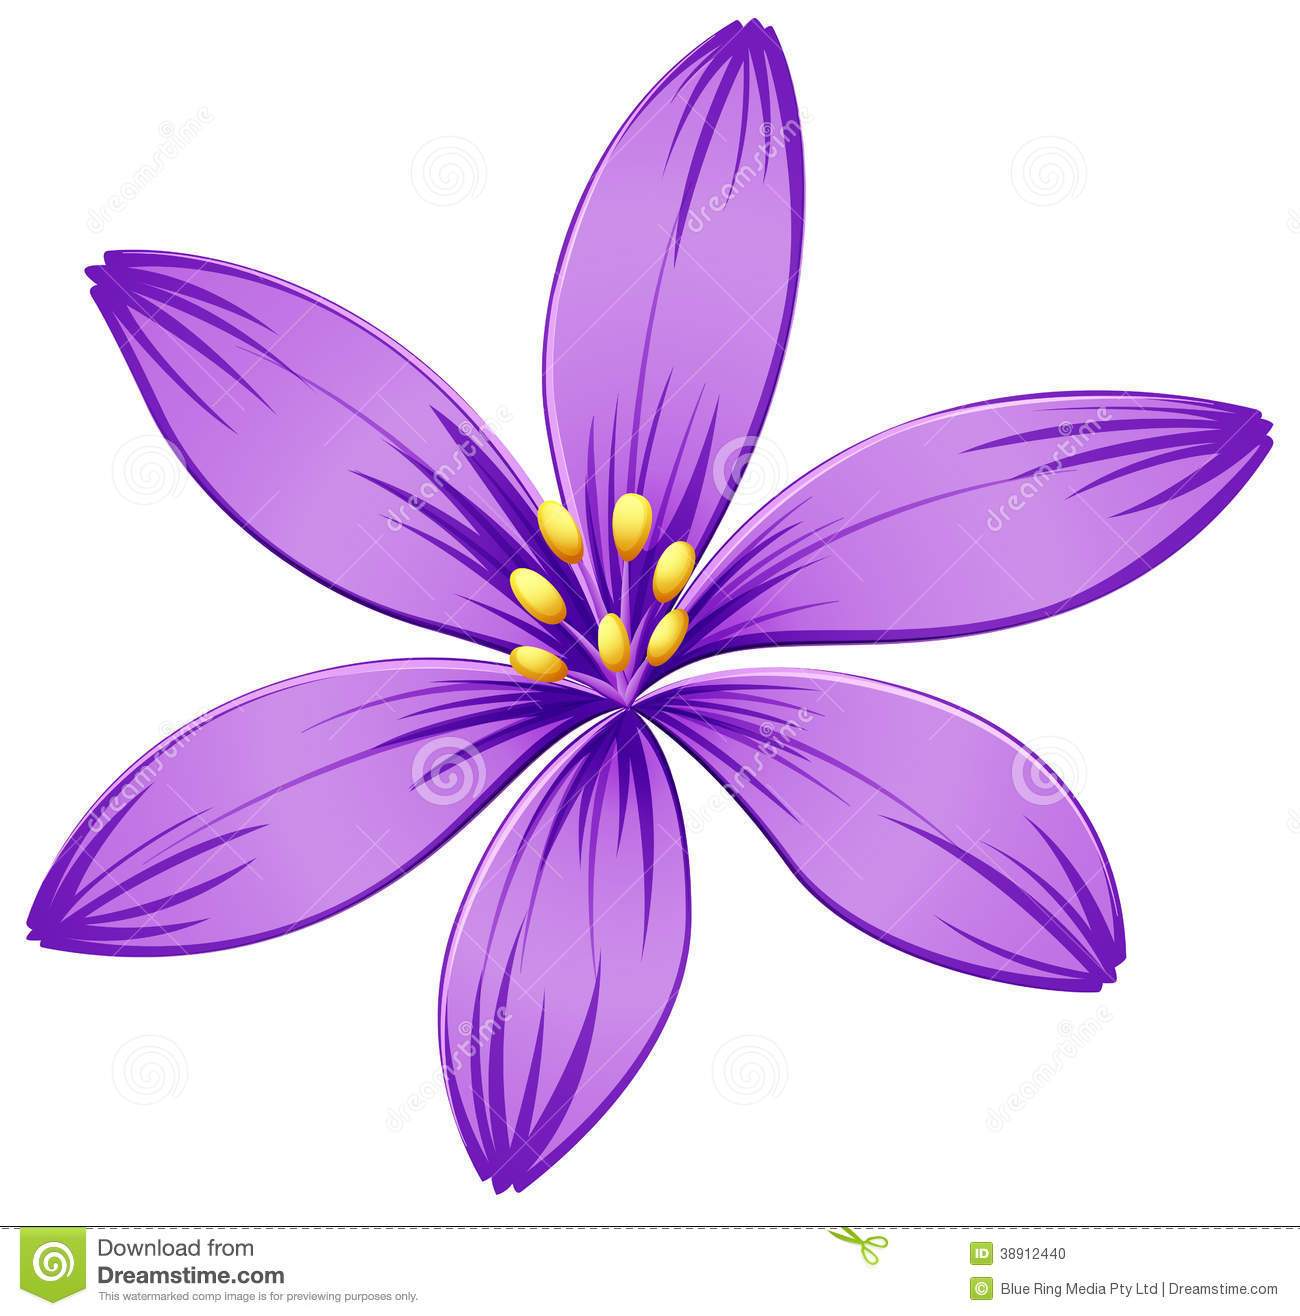 Five Petal Flower Clipart.